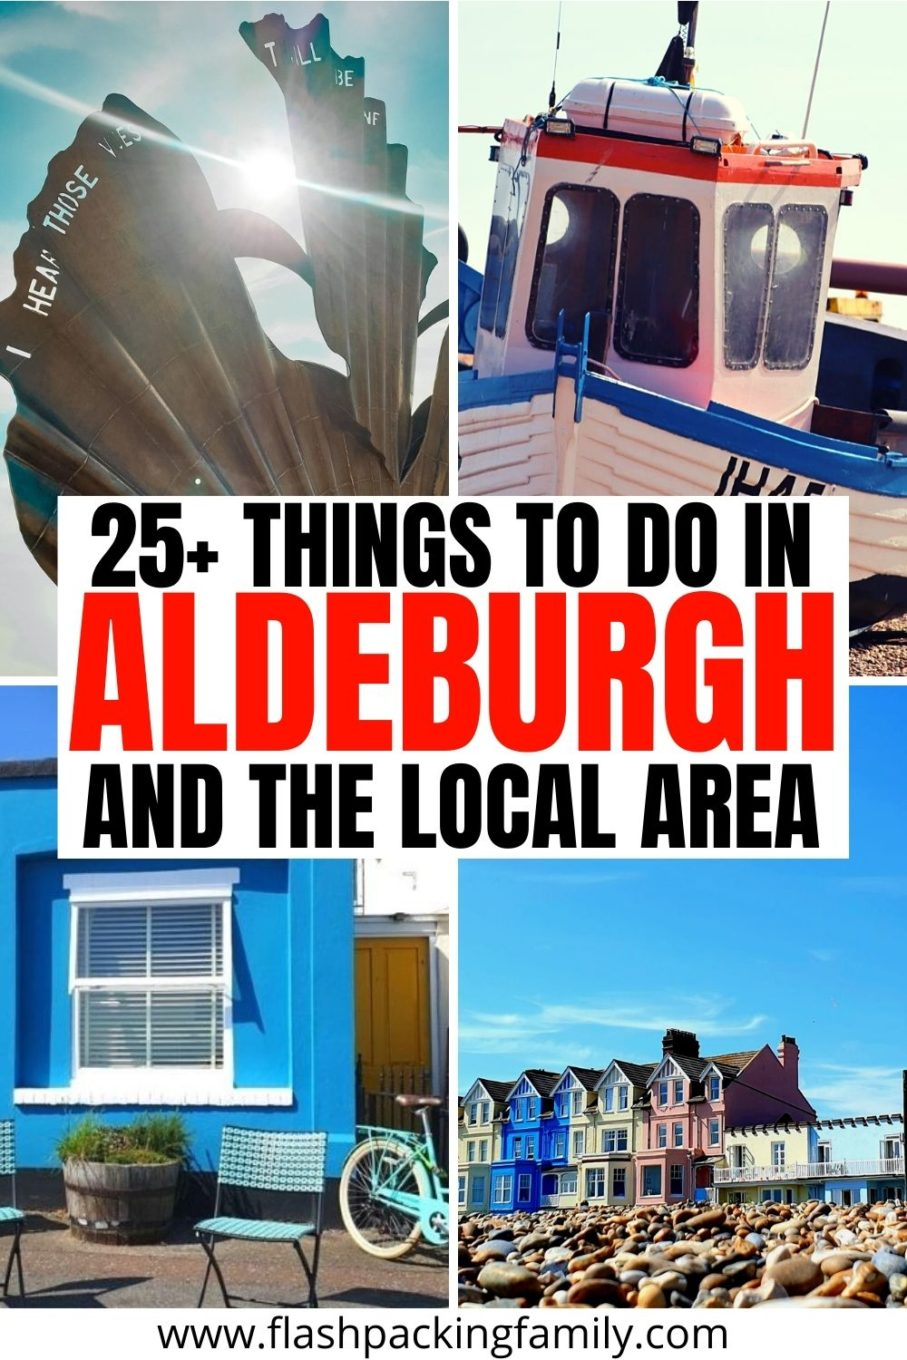 25+ Things to do in Aldeburgh and the local area.